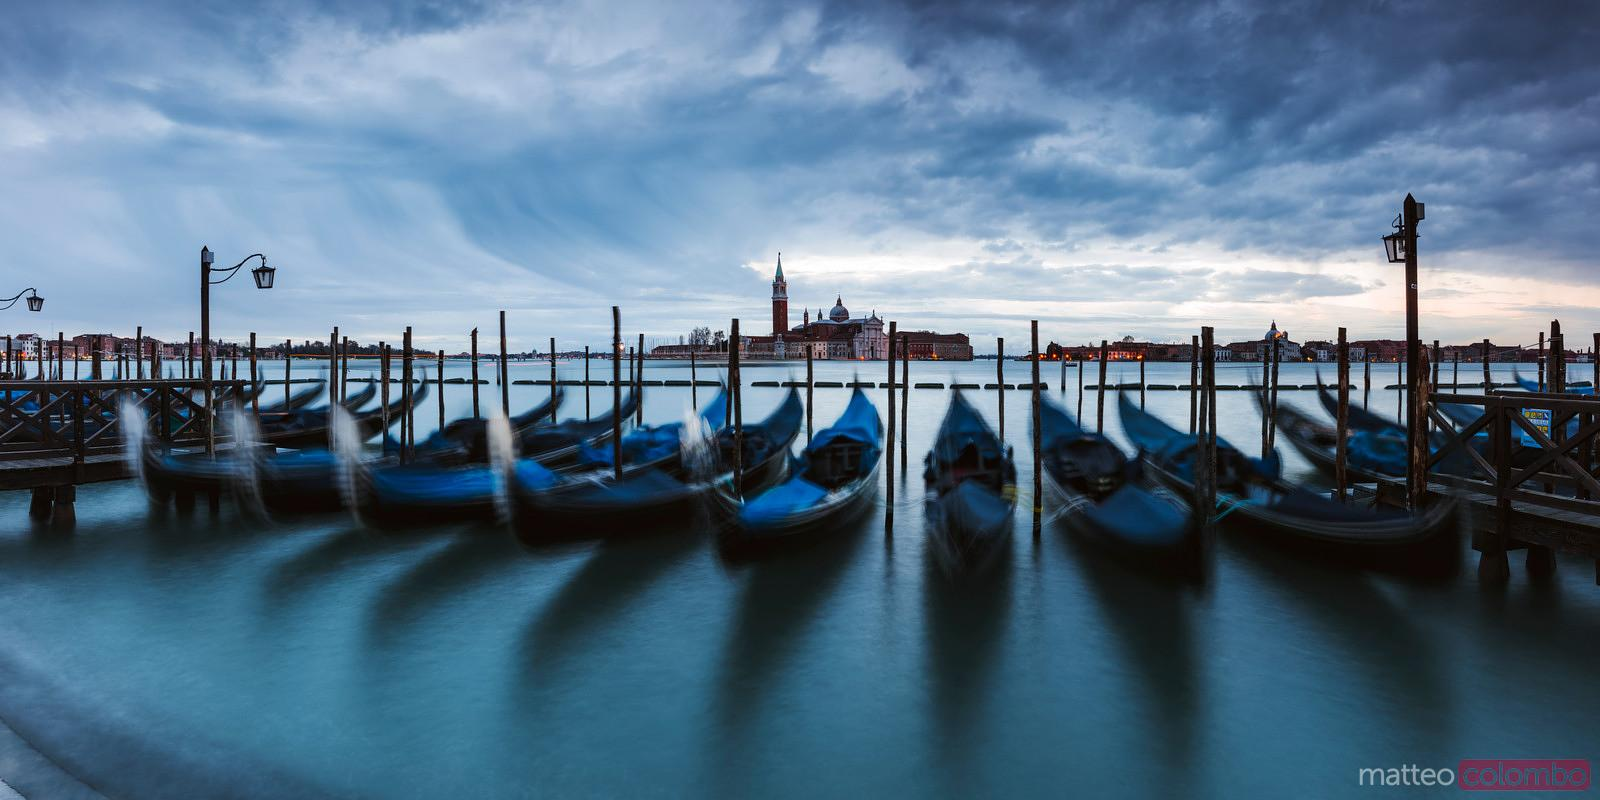 Panoramic of gondolas, Venice, Italy